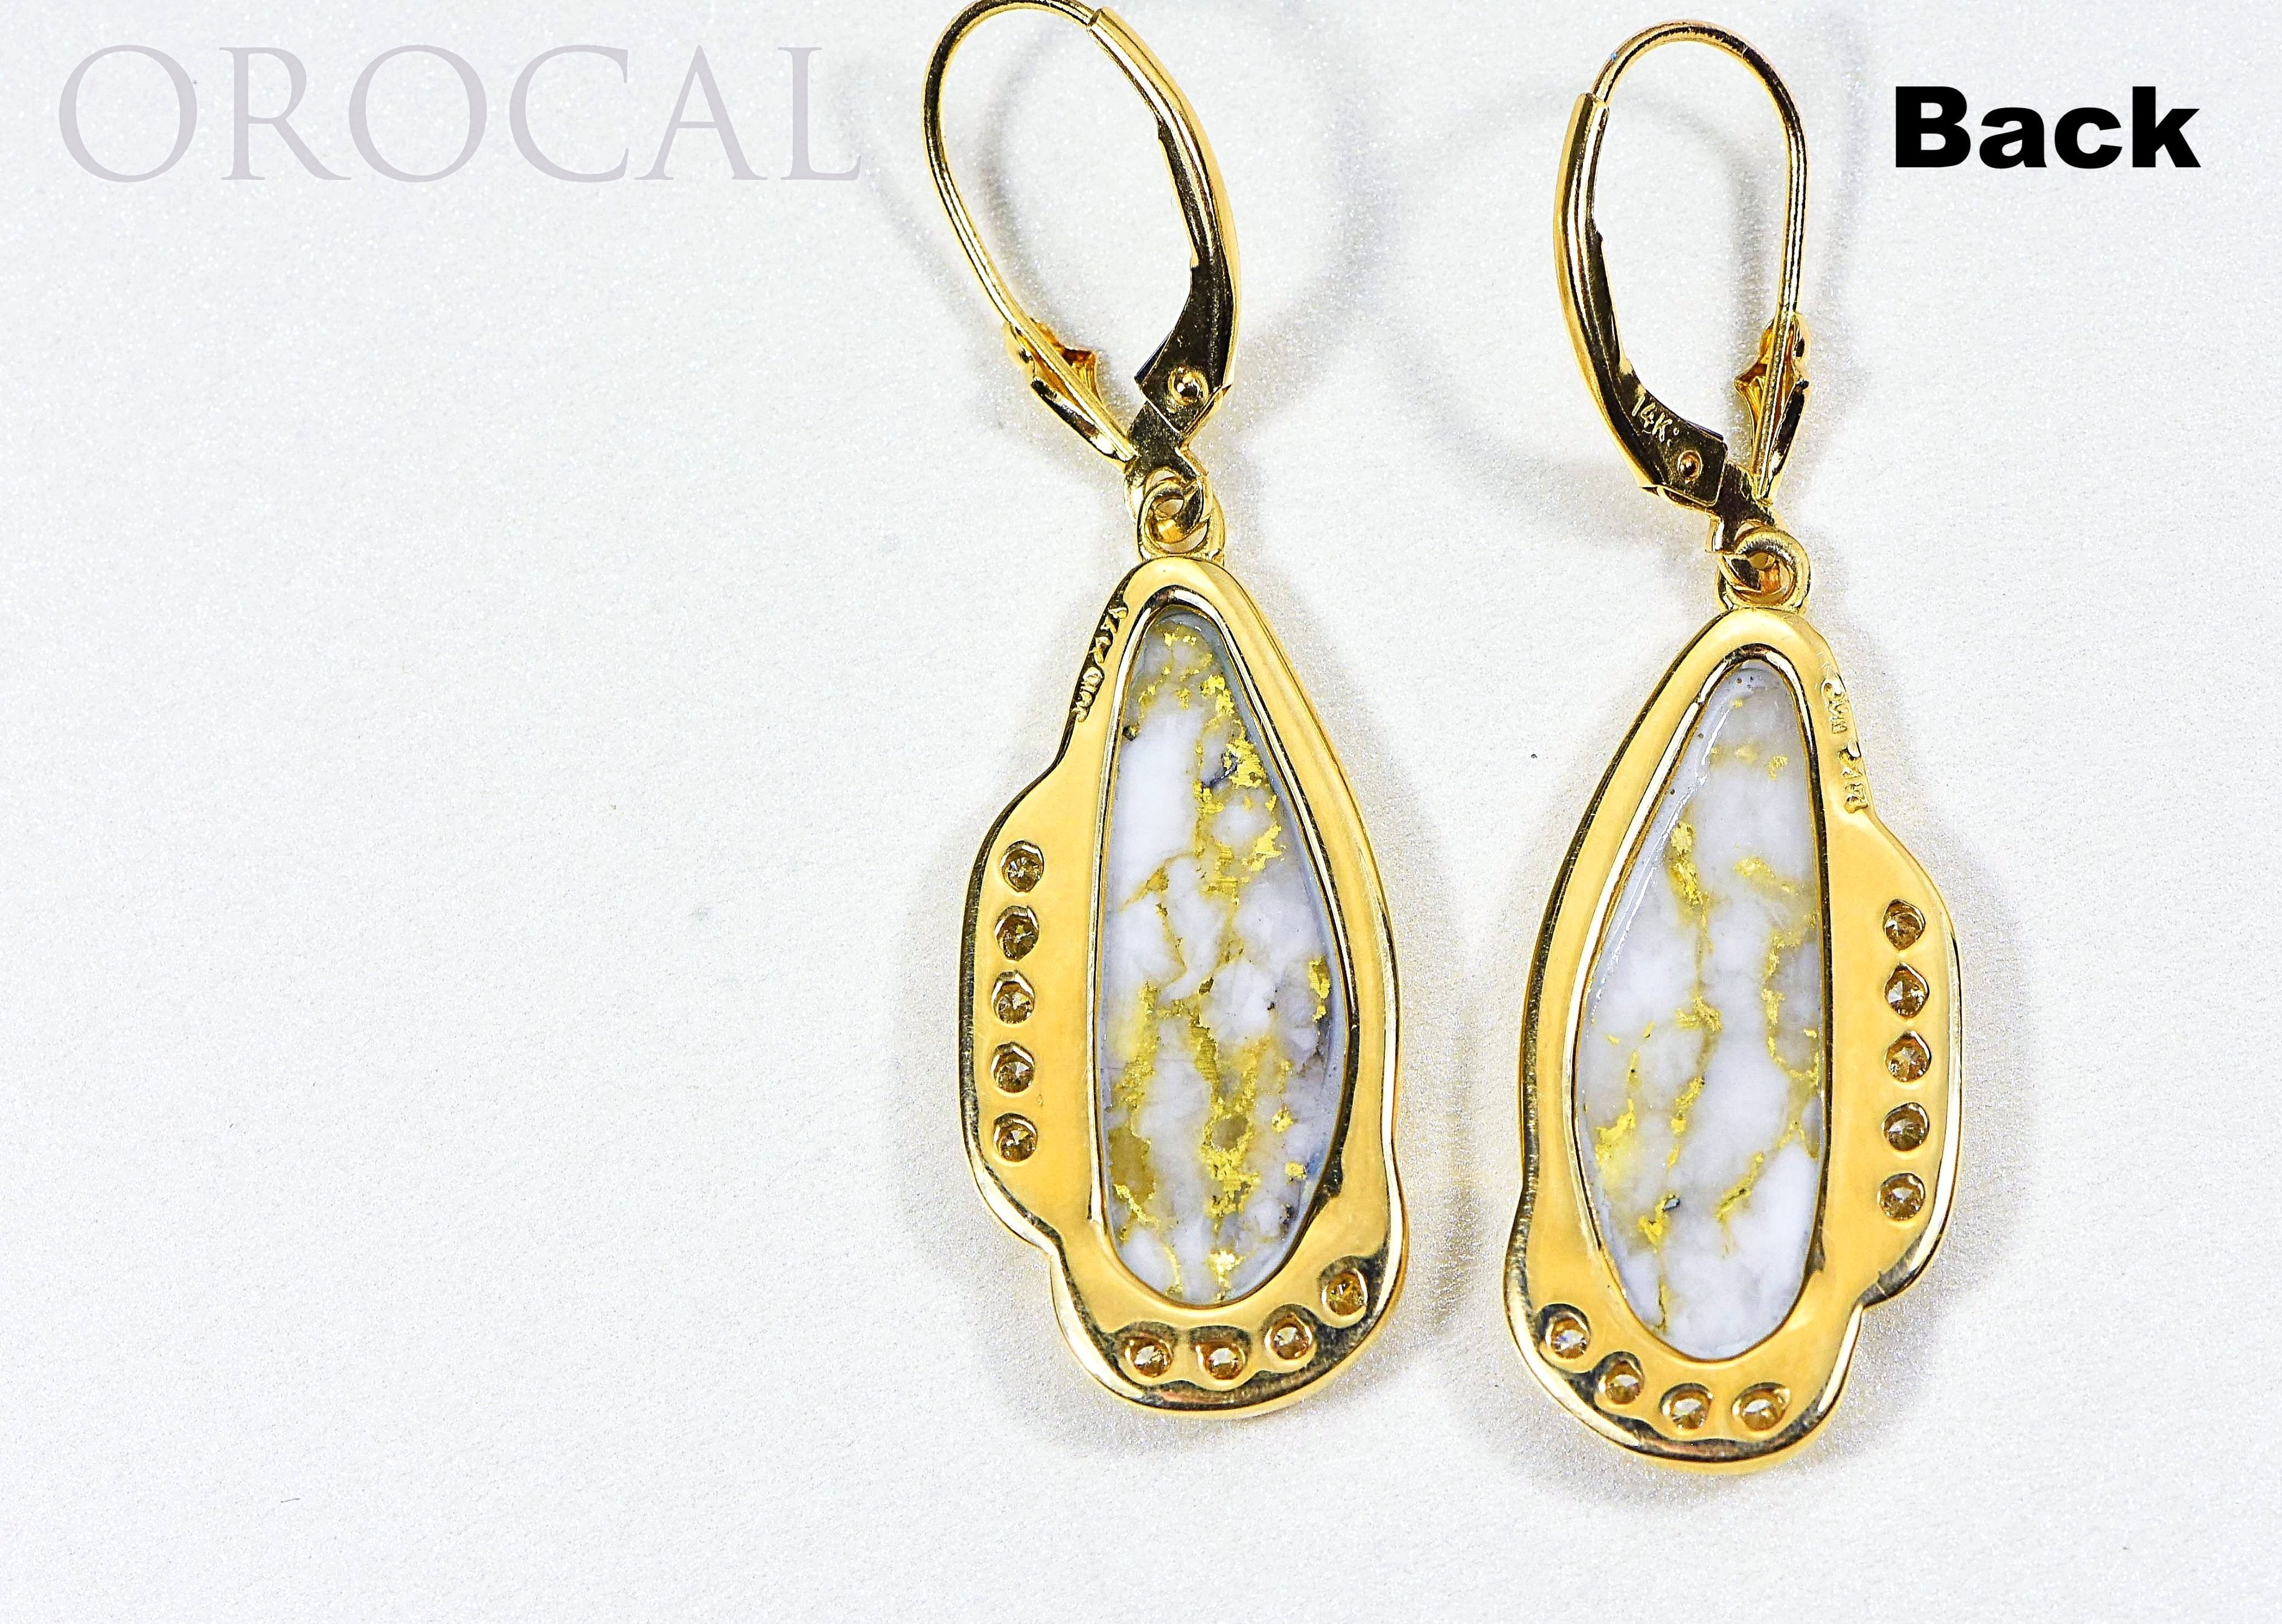 "Gold Quartz Earrings ""Orocal"" EN1106SDQ/LB Genuine Hand Crafted Jewelry - 14K Gold Casting - Liquidbullion"